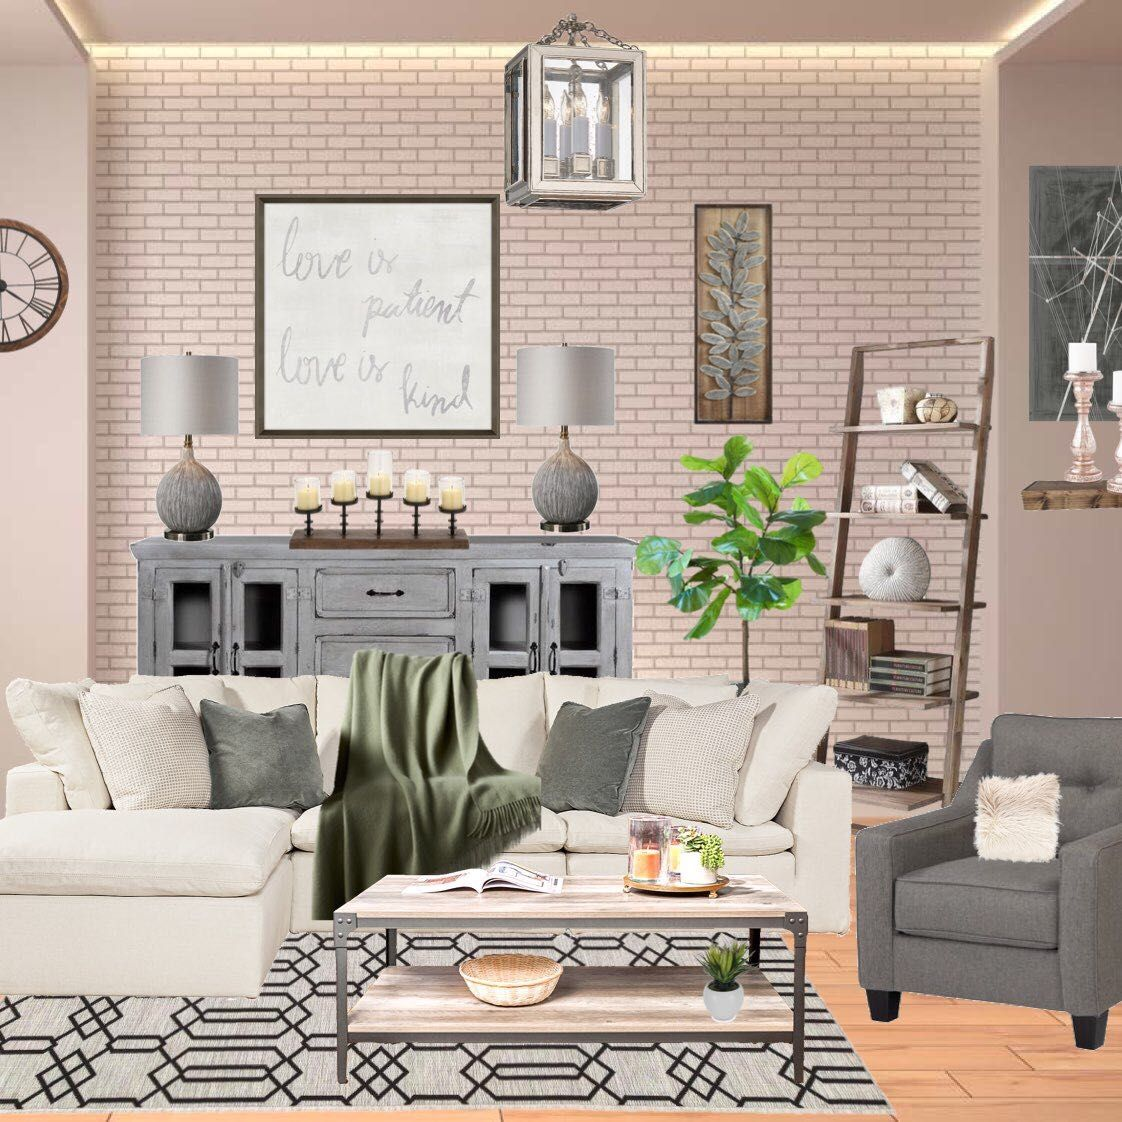 A Cozy Brick House Interior Living Room Designed By One Of Our